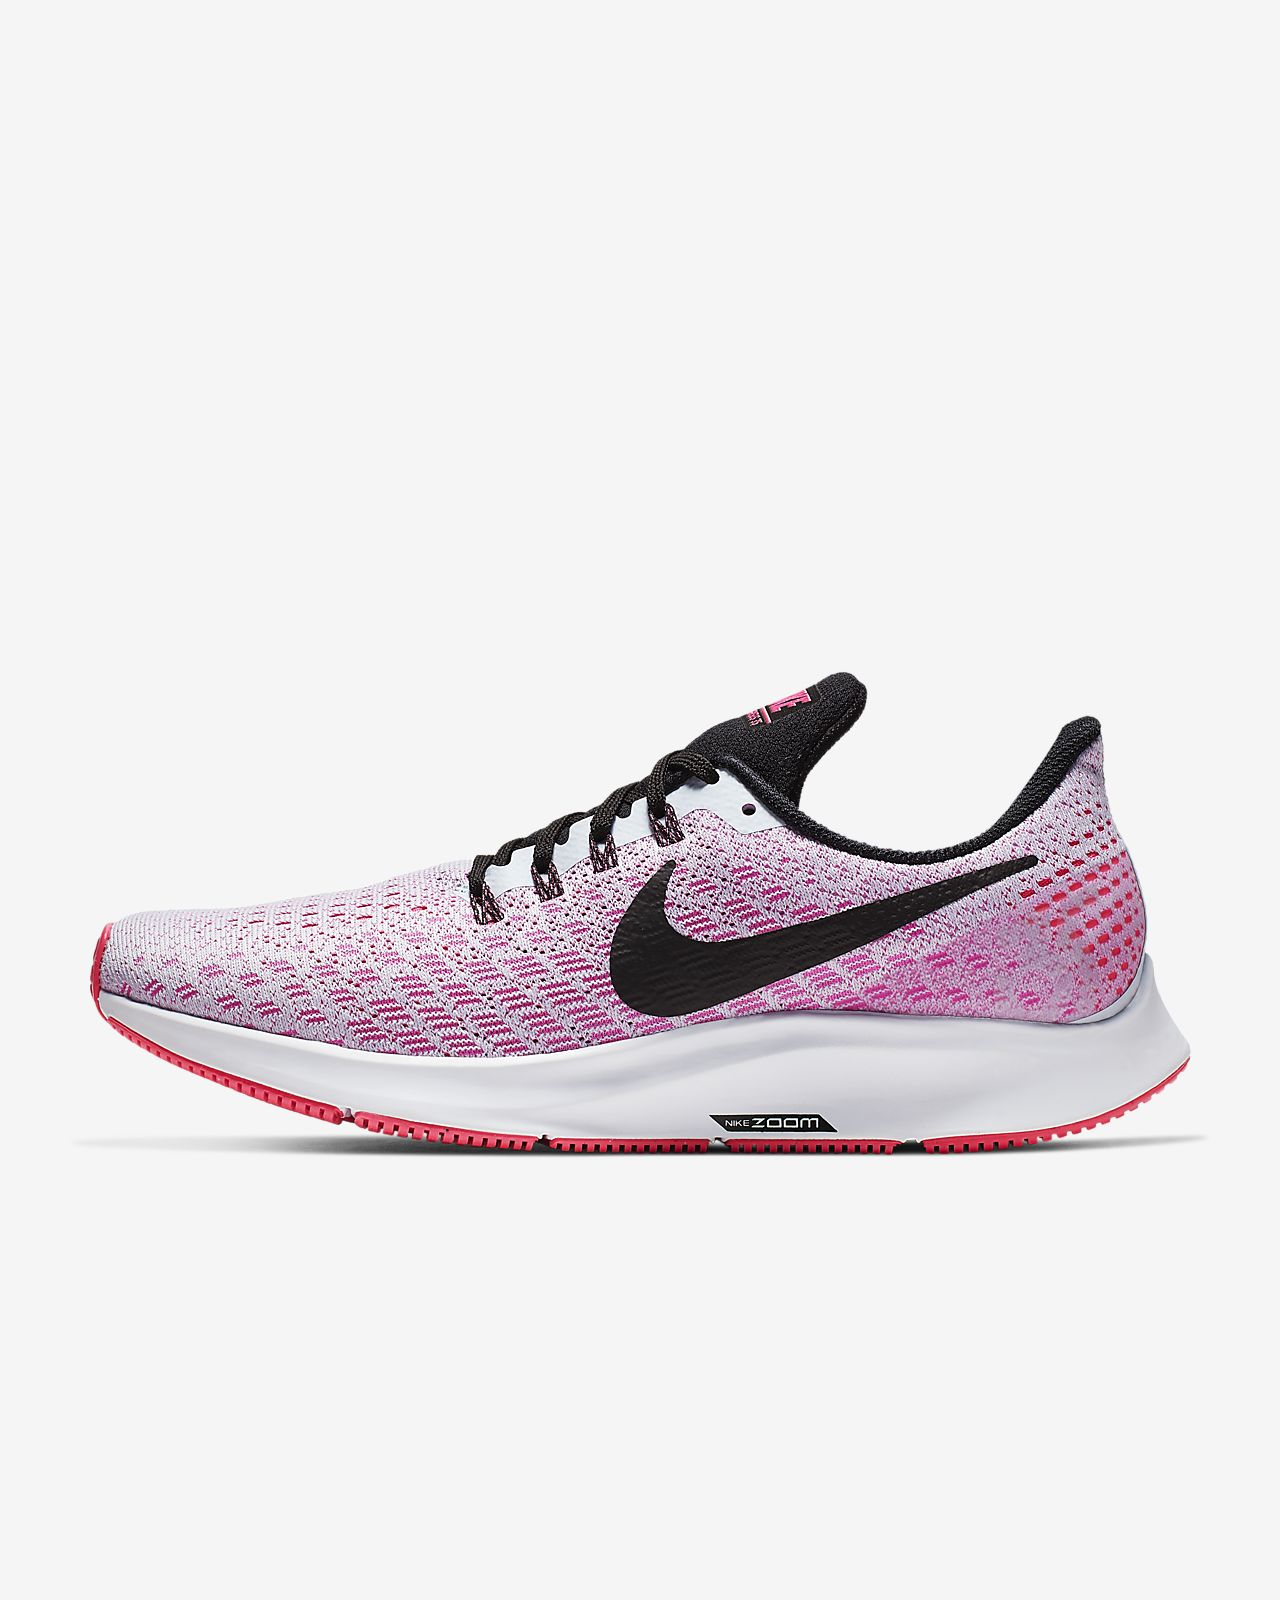 6875a449c604 Nike Air Zoom Pegasus 35 Women s Running Shoe. Nike.com